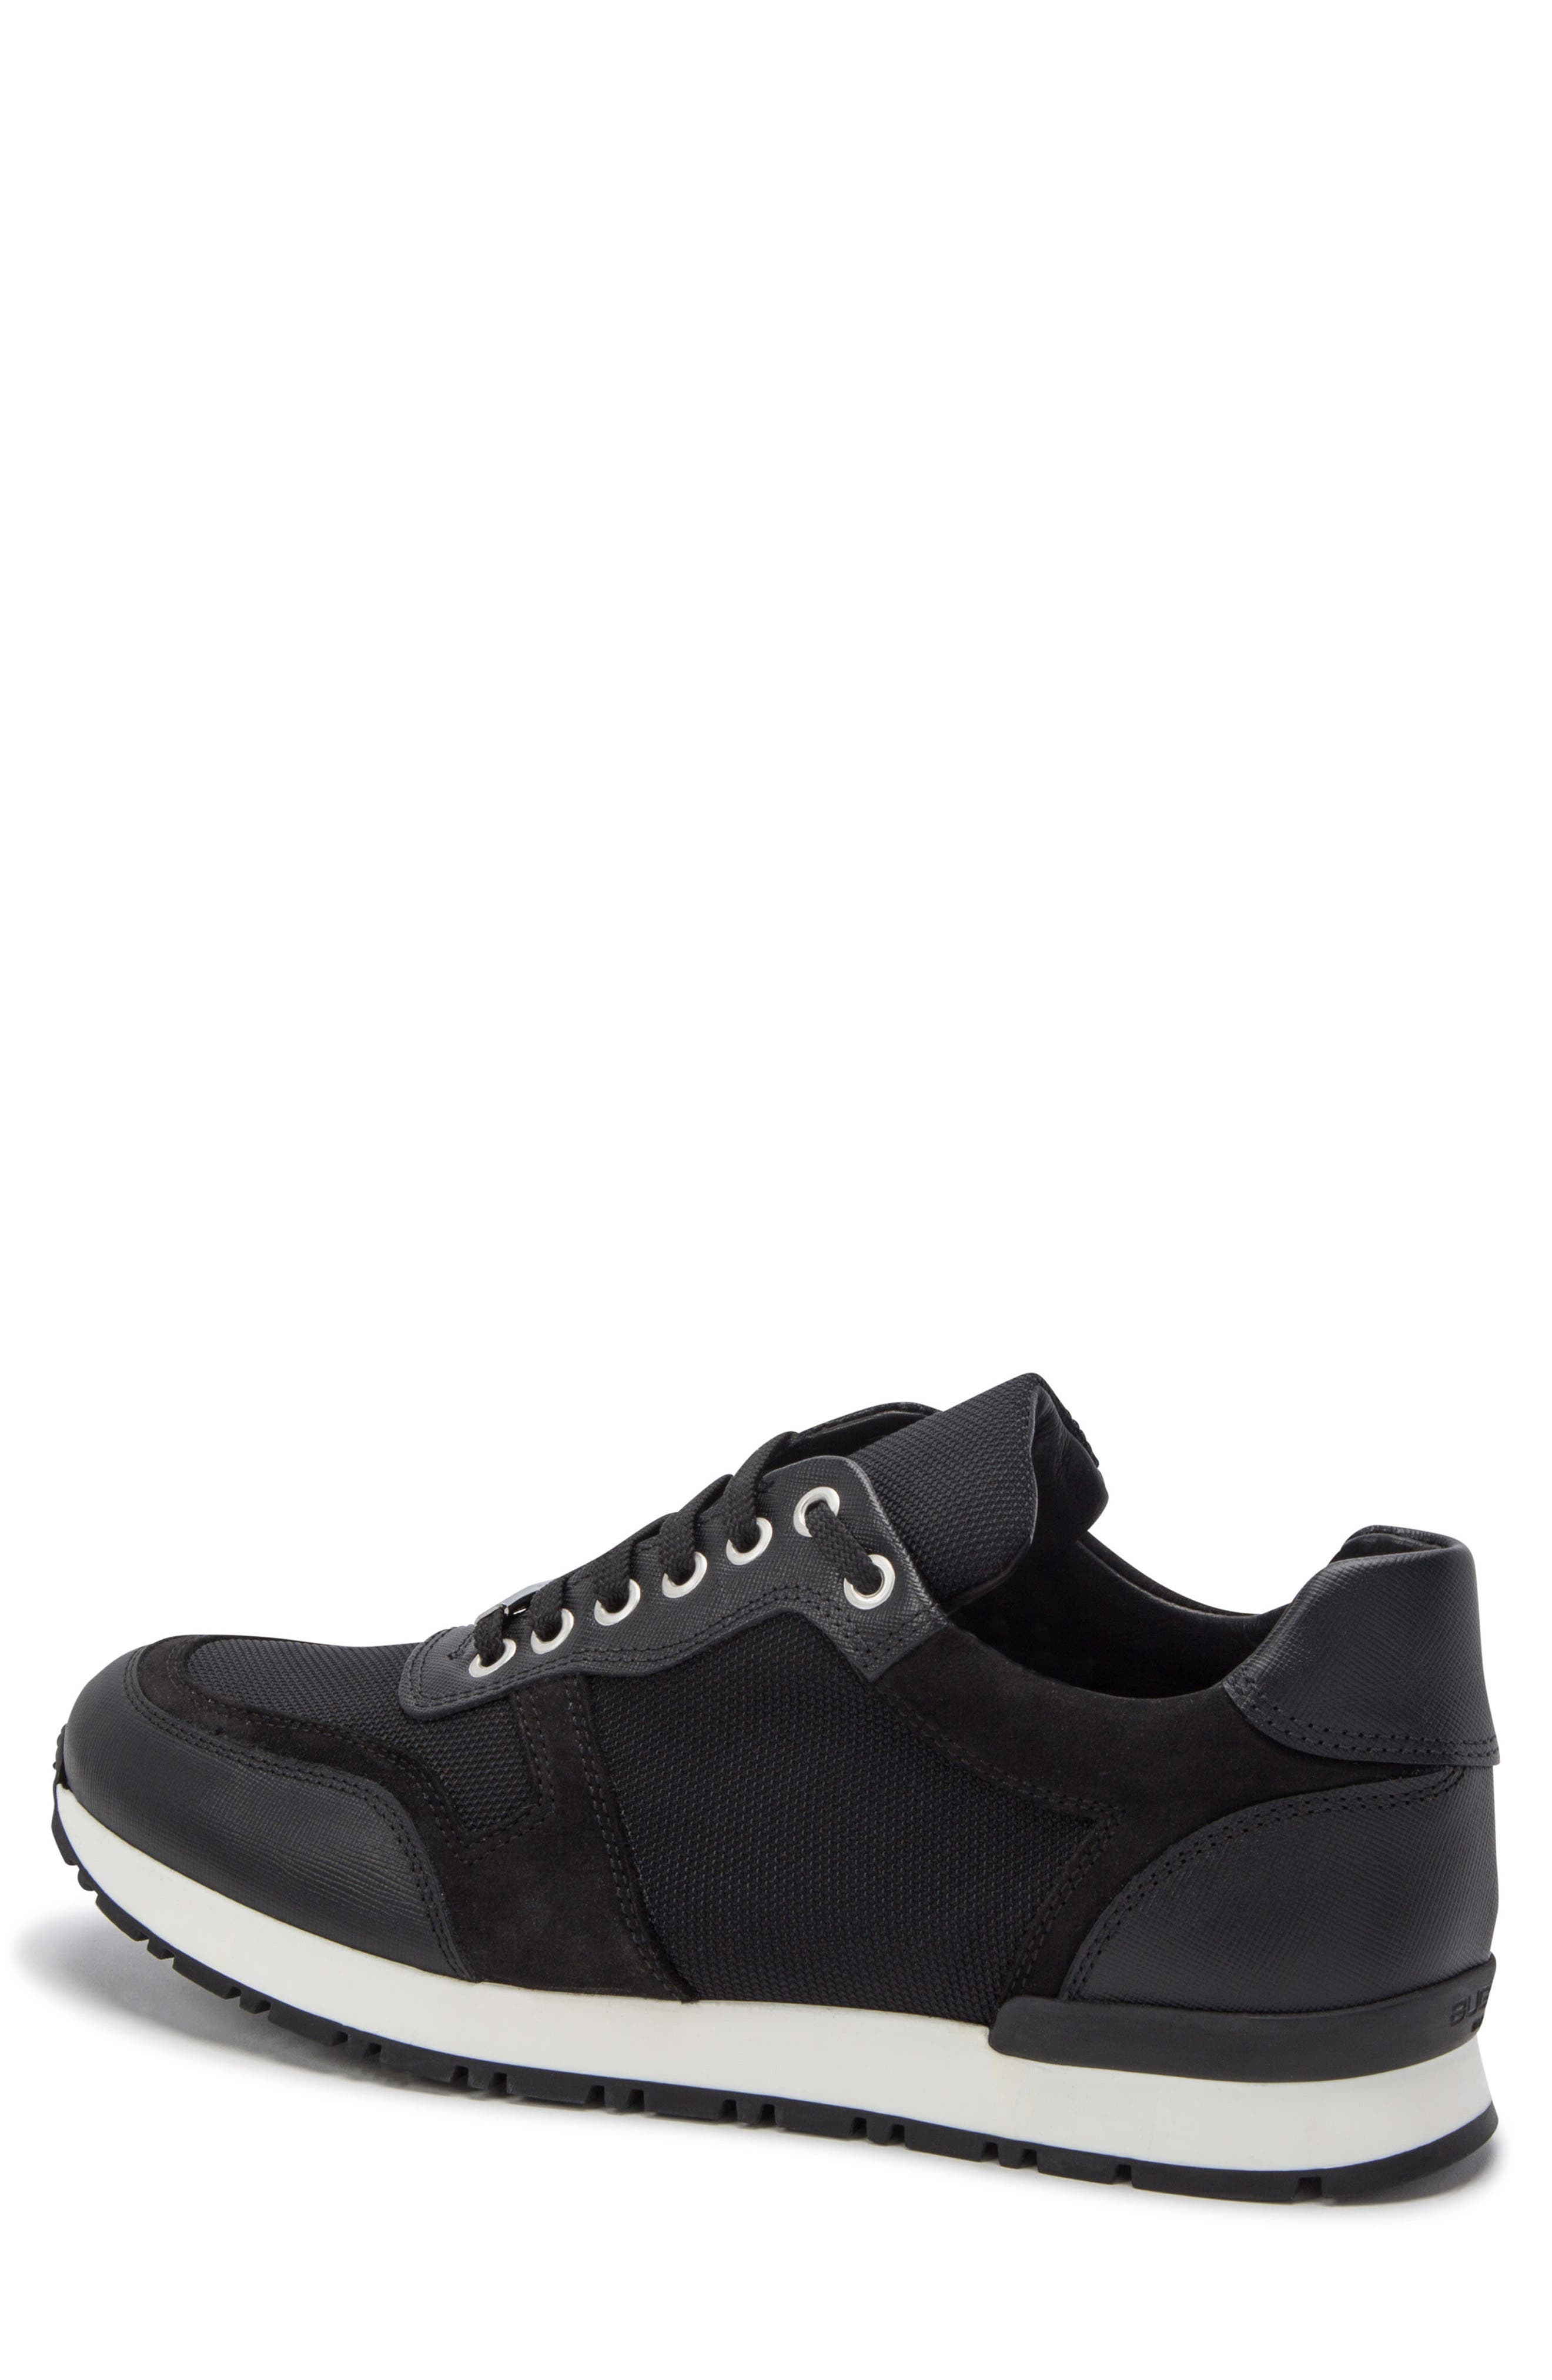 Modena Sneaker,                             Alternate thumbnail 2, color,                             NERO BLACK